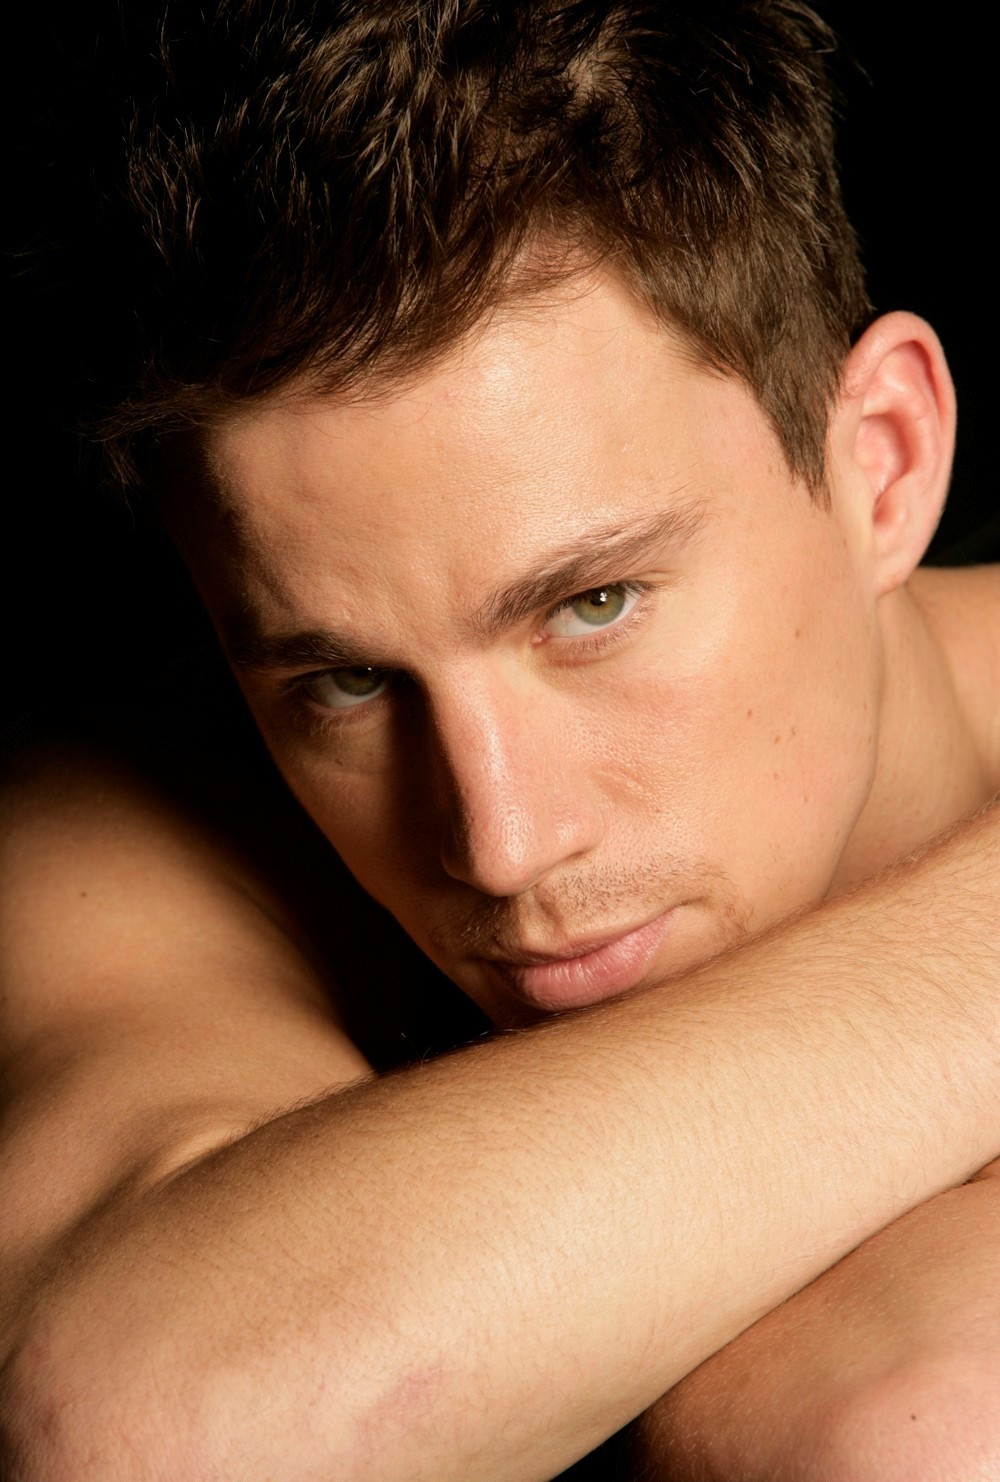 channing girls Channing tatum says he did 'a lot of bad things' during his stripper days at the age of 19 channing who glammed up girls erin holland and natasha.